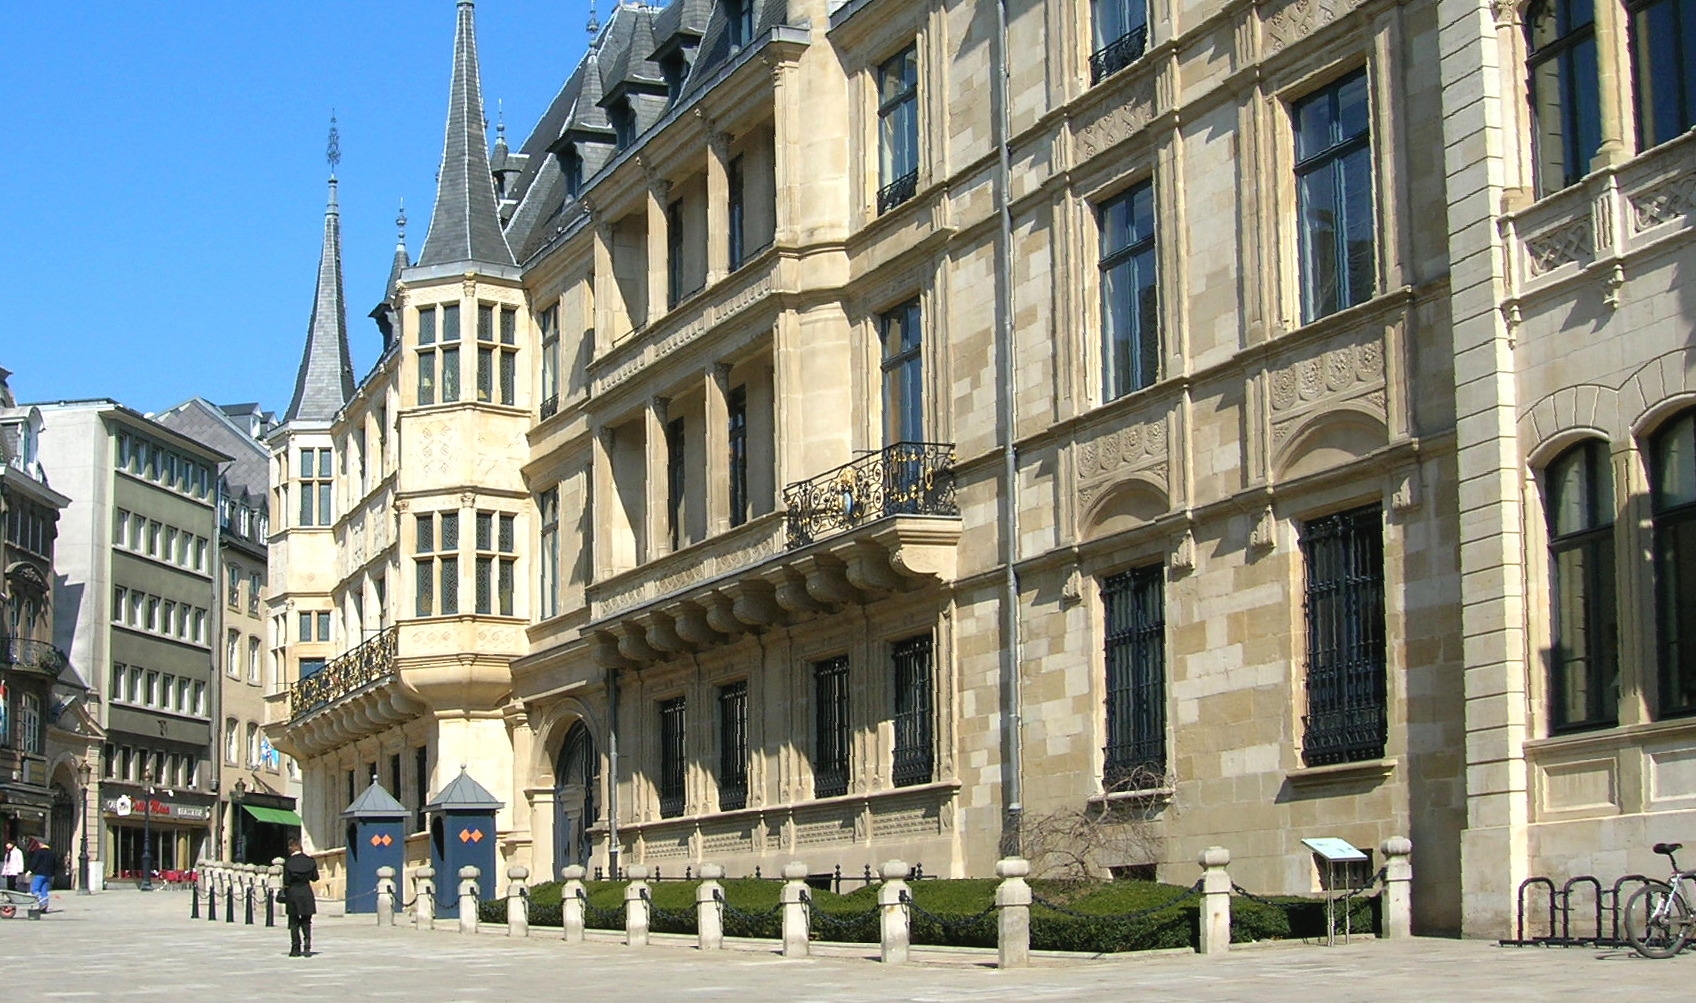 The Grand Ducal Palace of Luxembourg